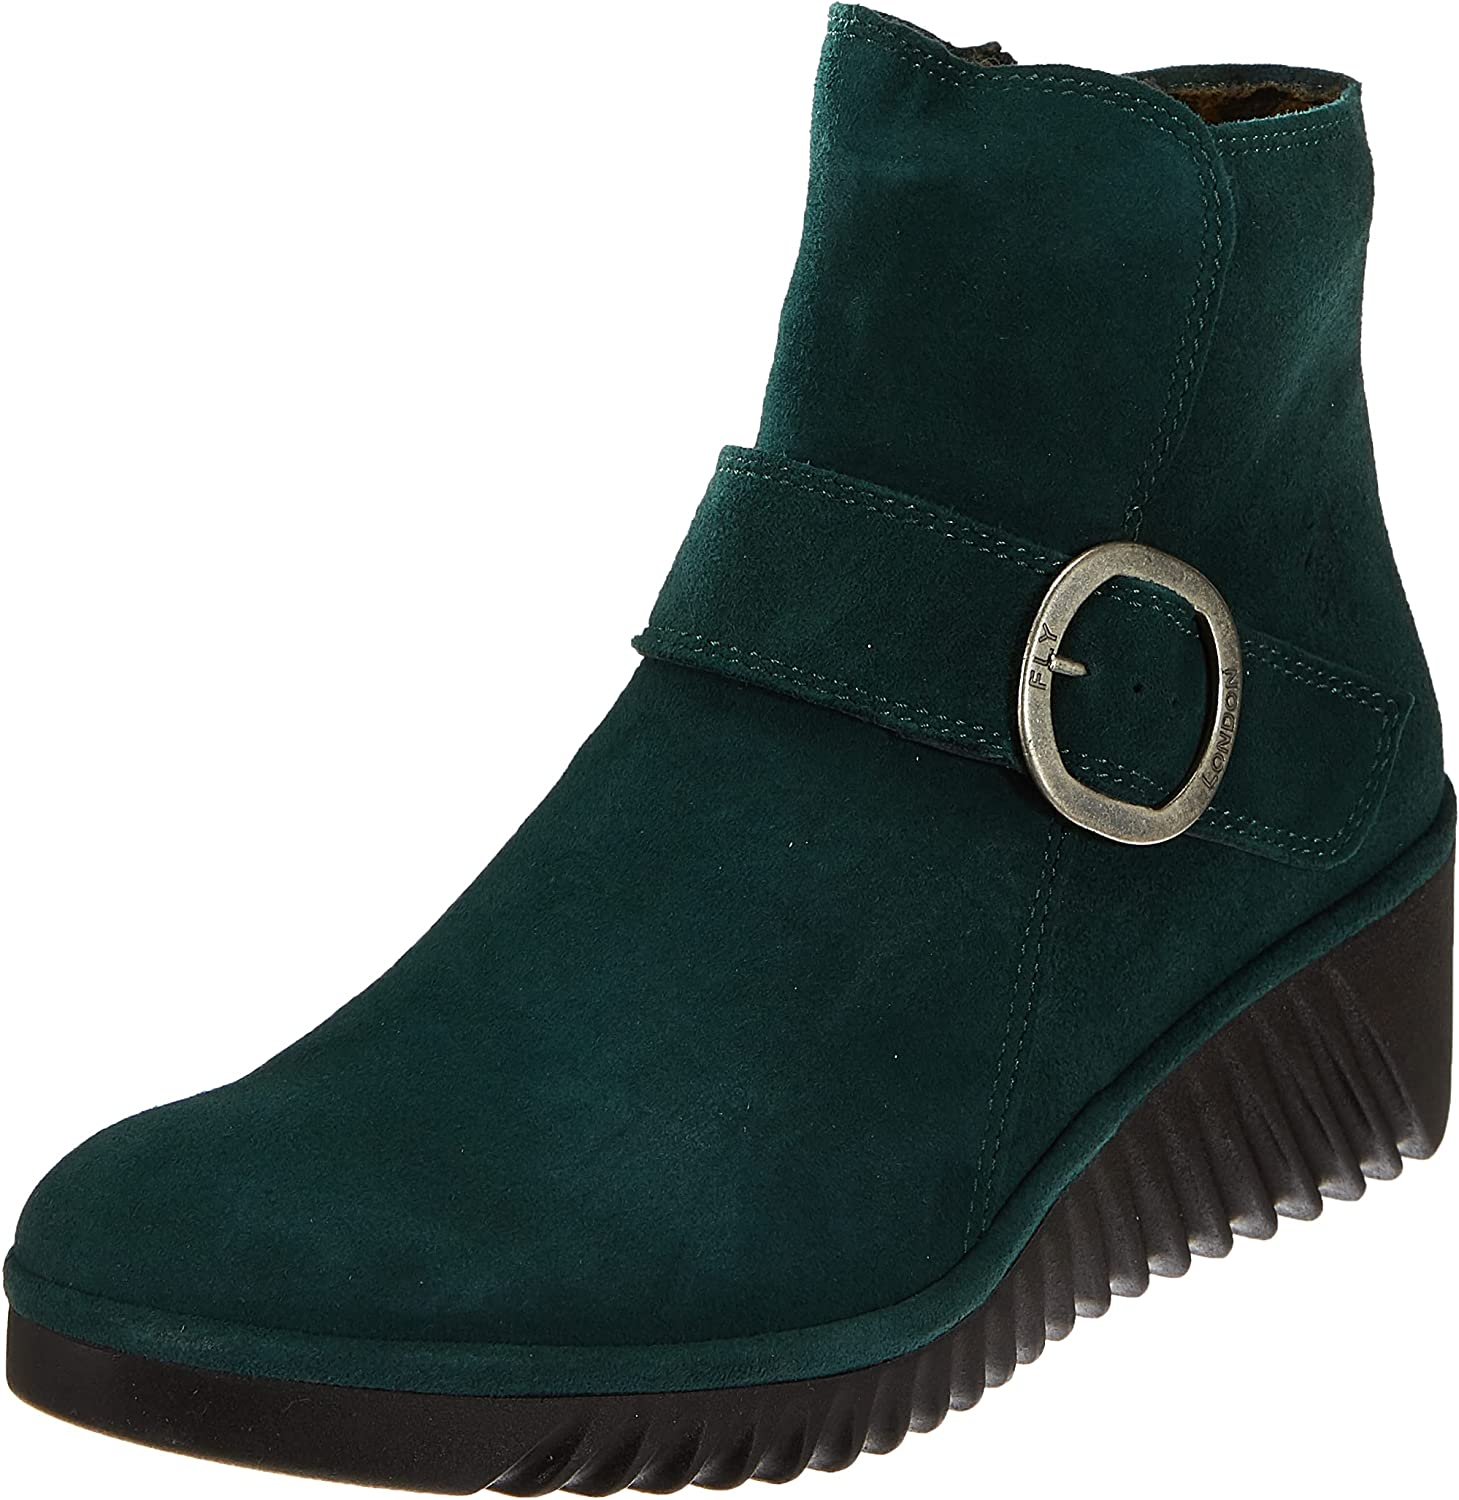 FLY London Women's Indianapolis Mall Boot Ankle Leli334fly Limited time cheap sale